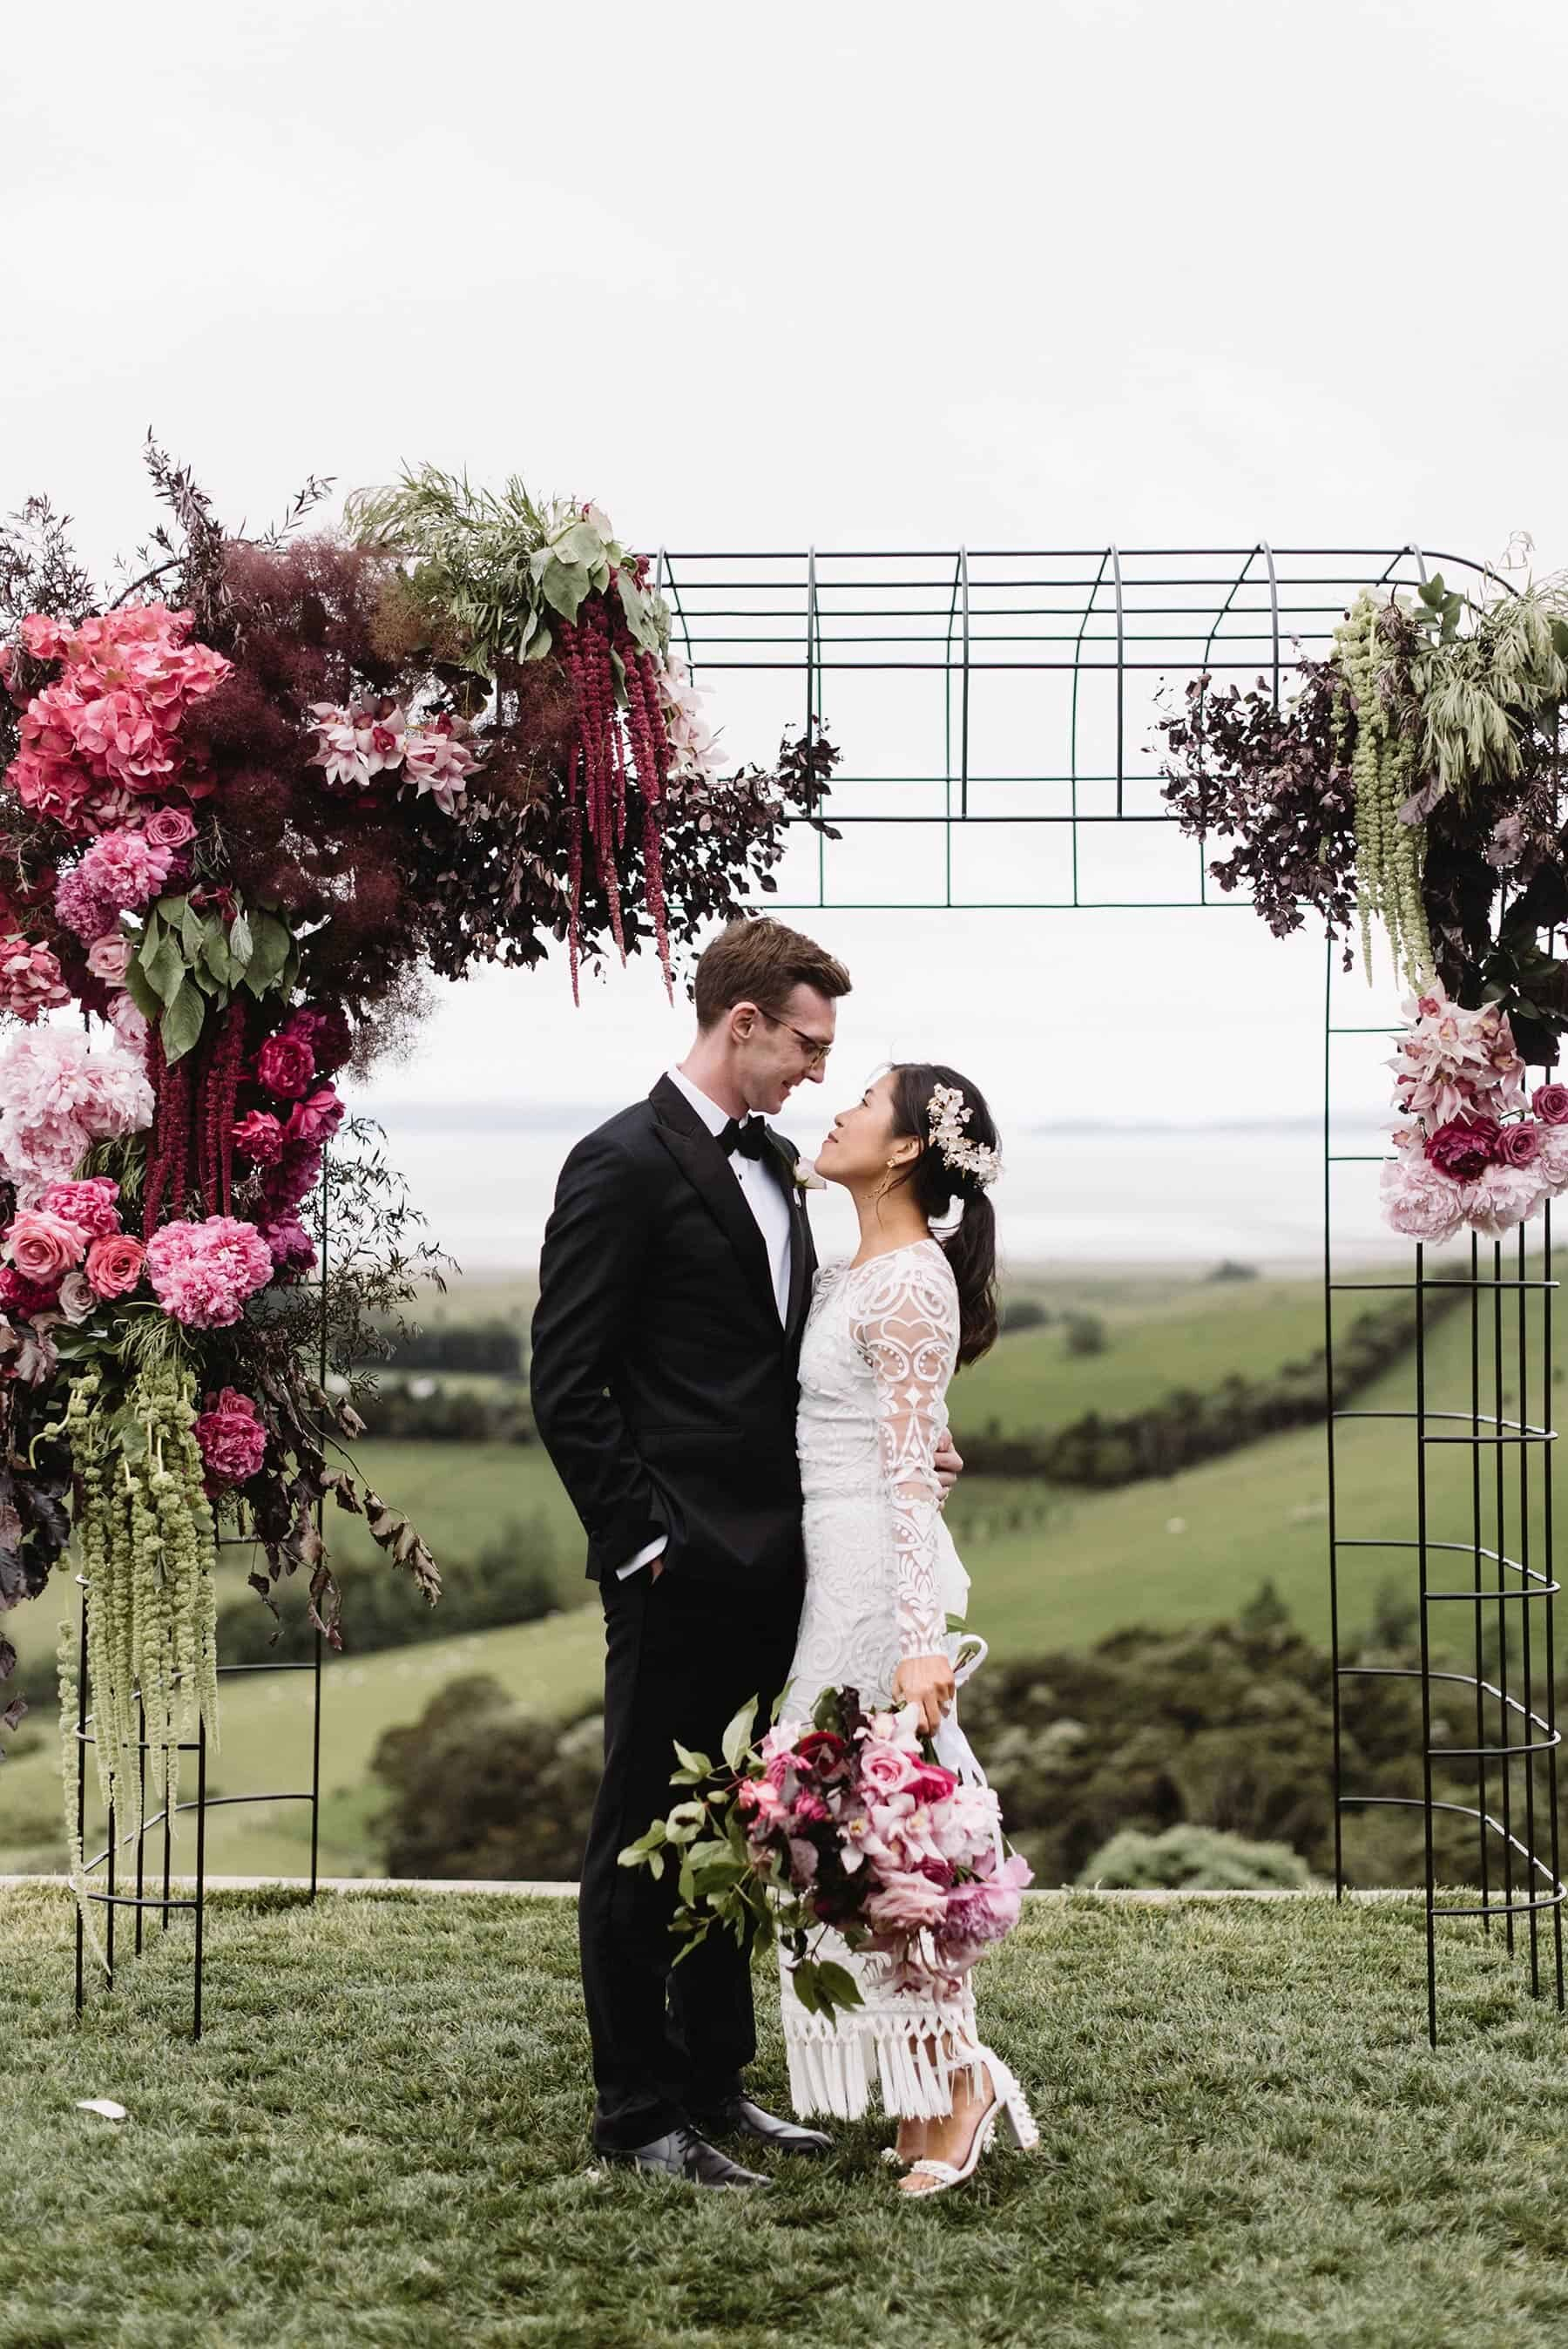 Flower-filled Wedding at Kauri Bay Boomrock / Photography by Nisha Ravji